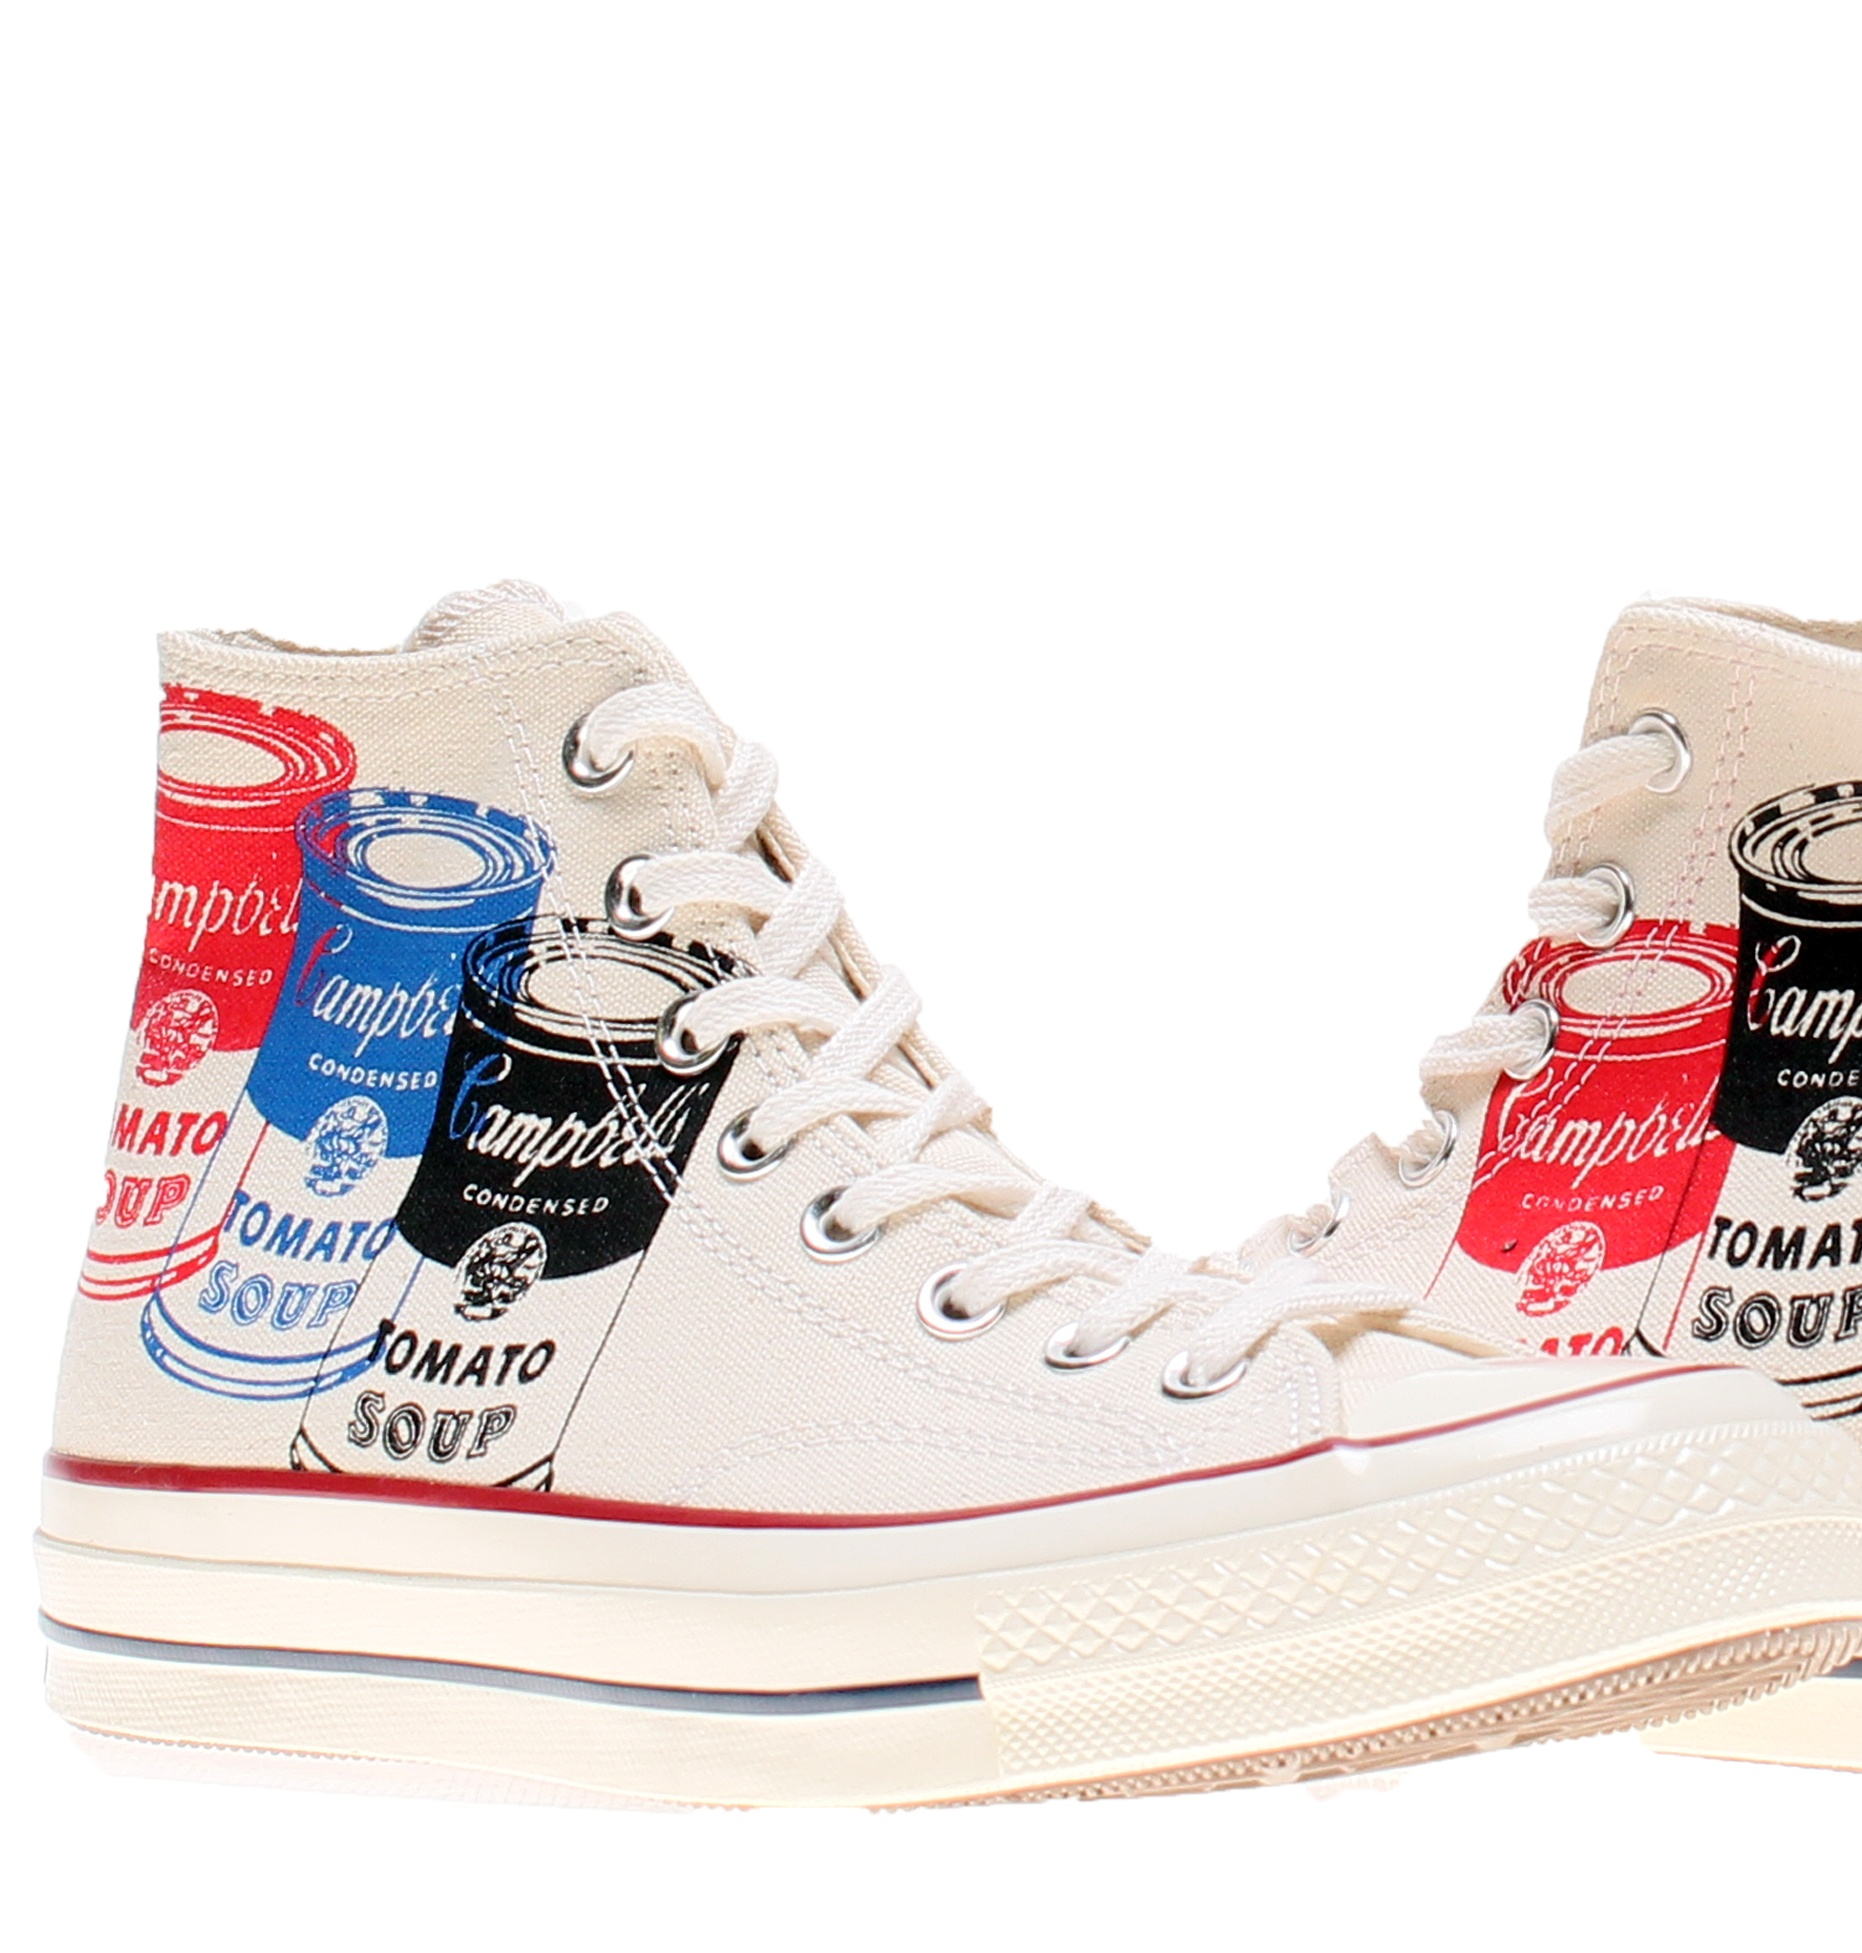 Converse Chuck Taylor All Star '70 Natual High Top Sneakers by